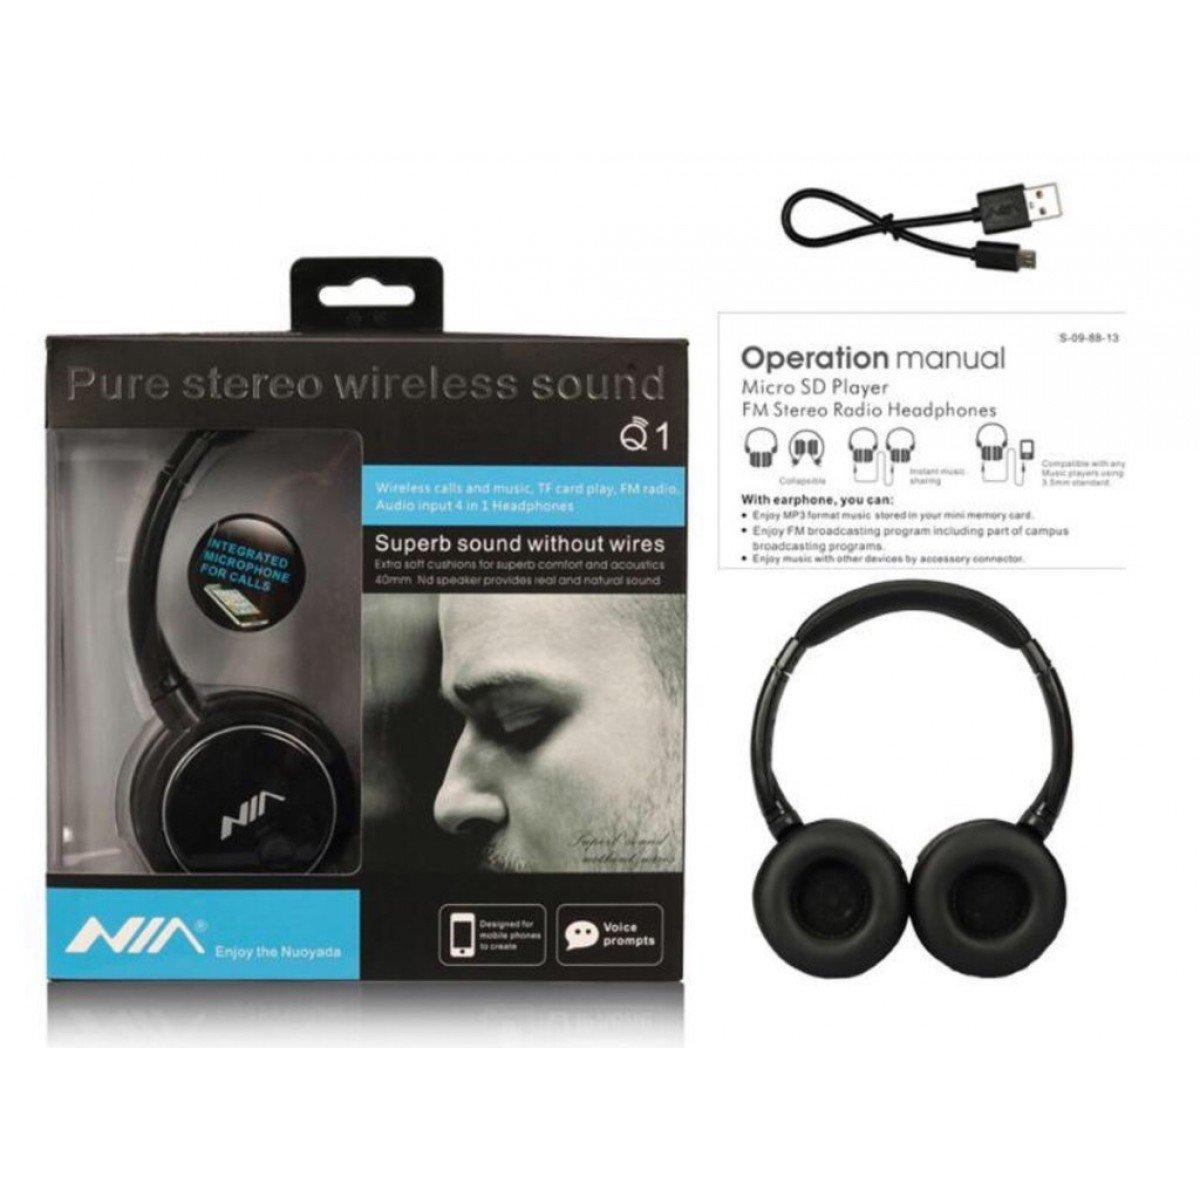 c001b556c4f Electrotech Wireless Bass Headphones Bluetooth Headsets Nia Q1-4 in1 With  Micro SD AUX Slot